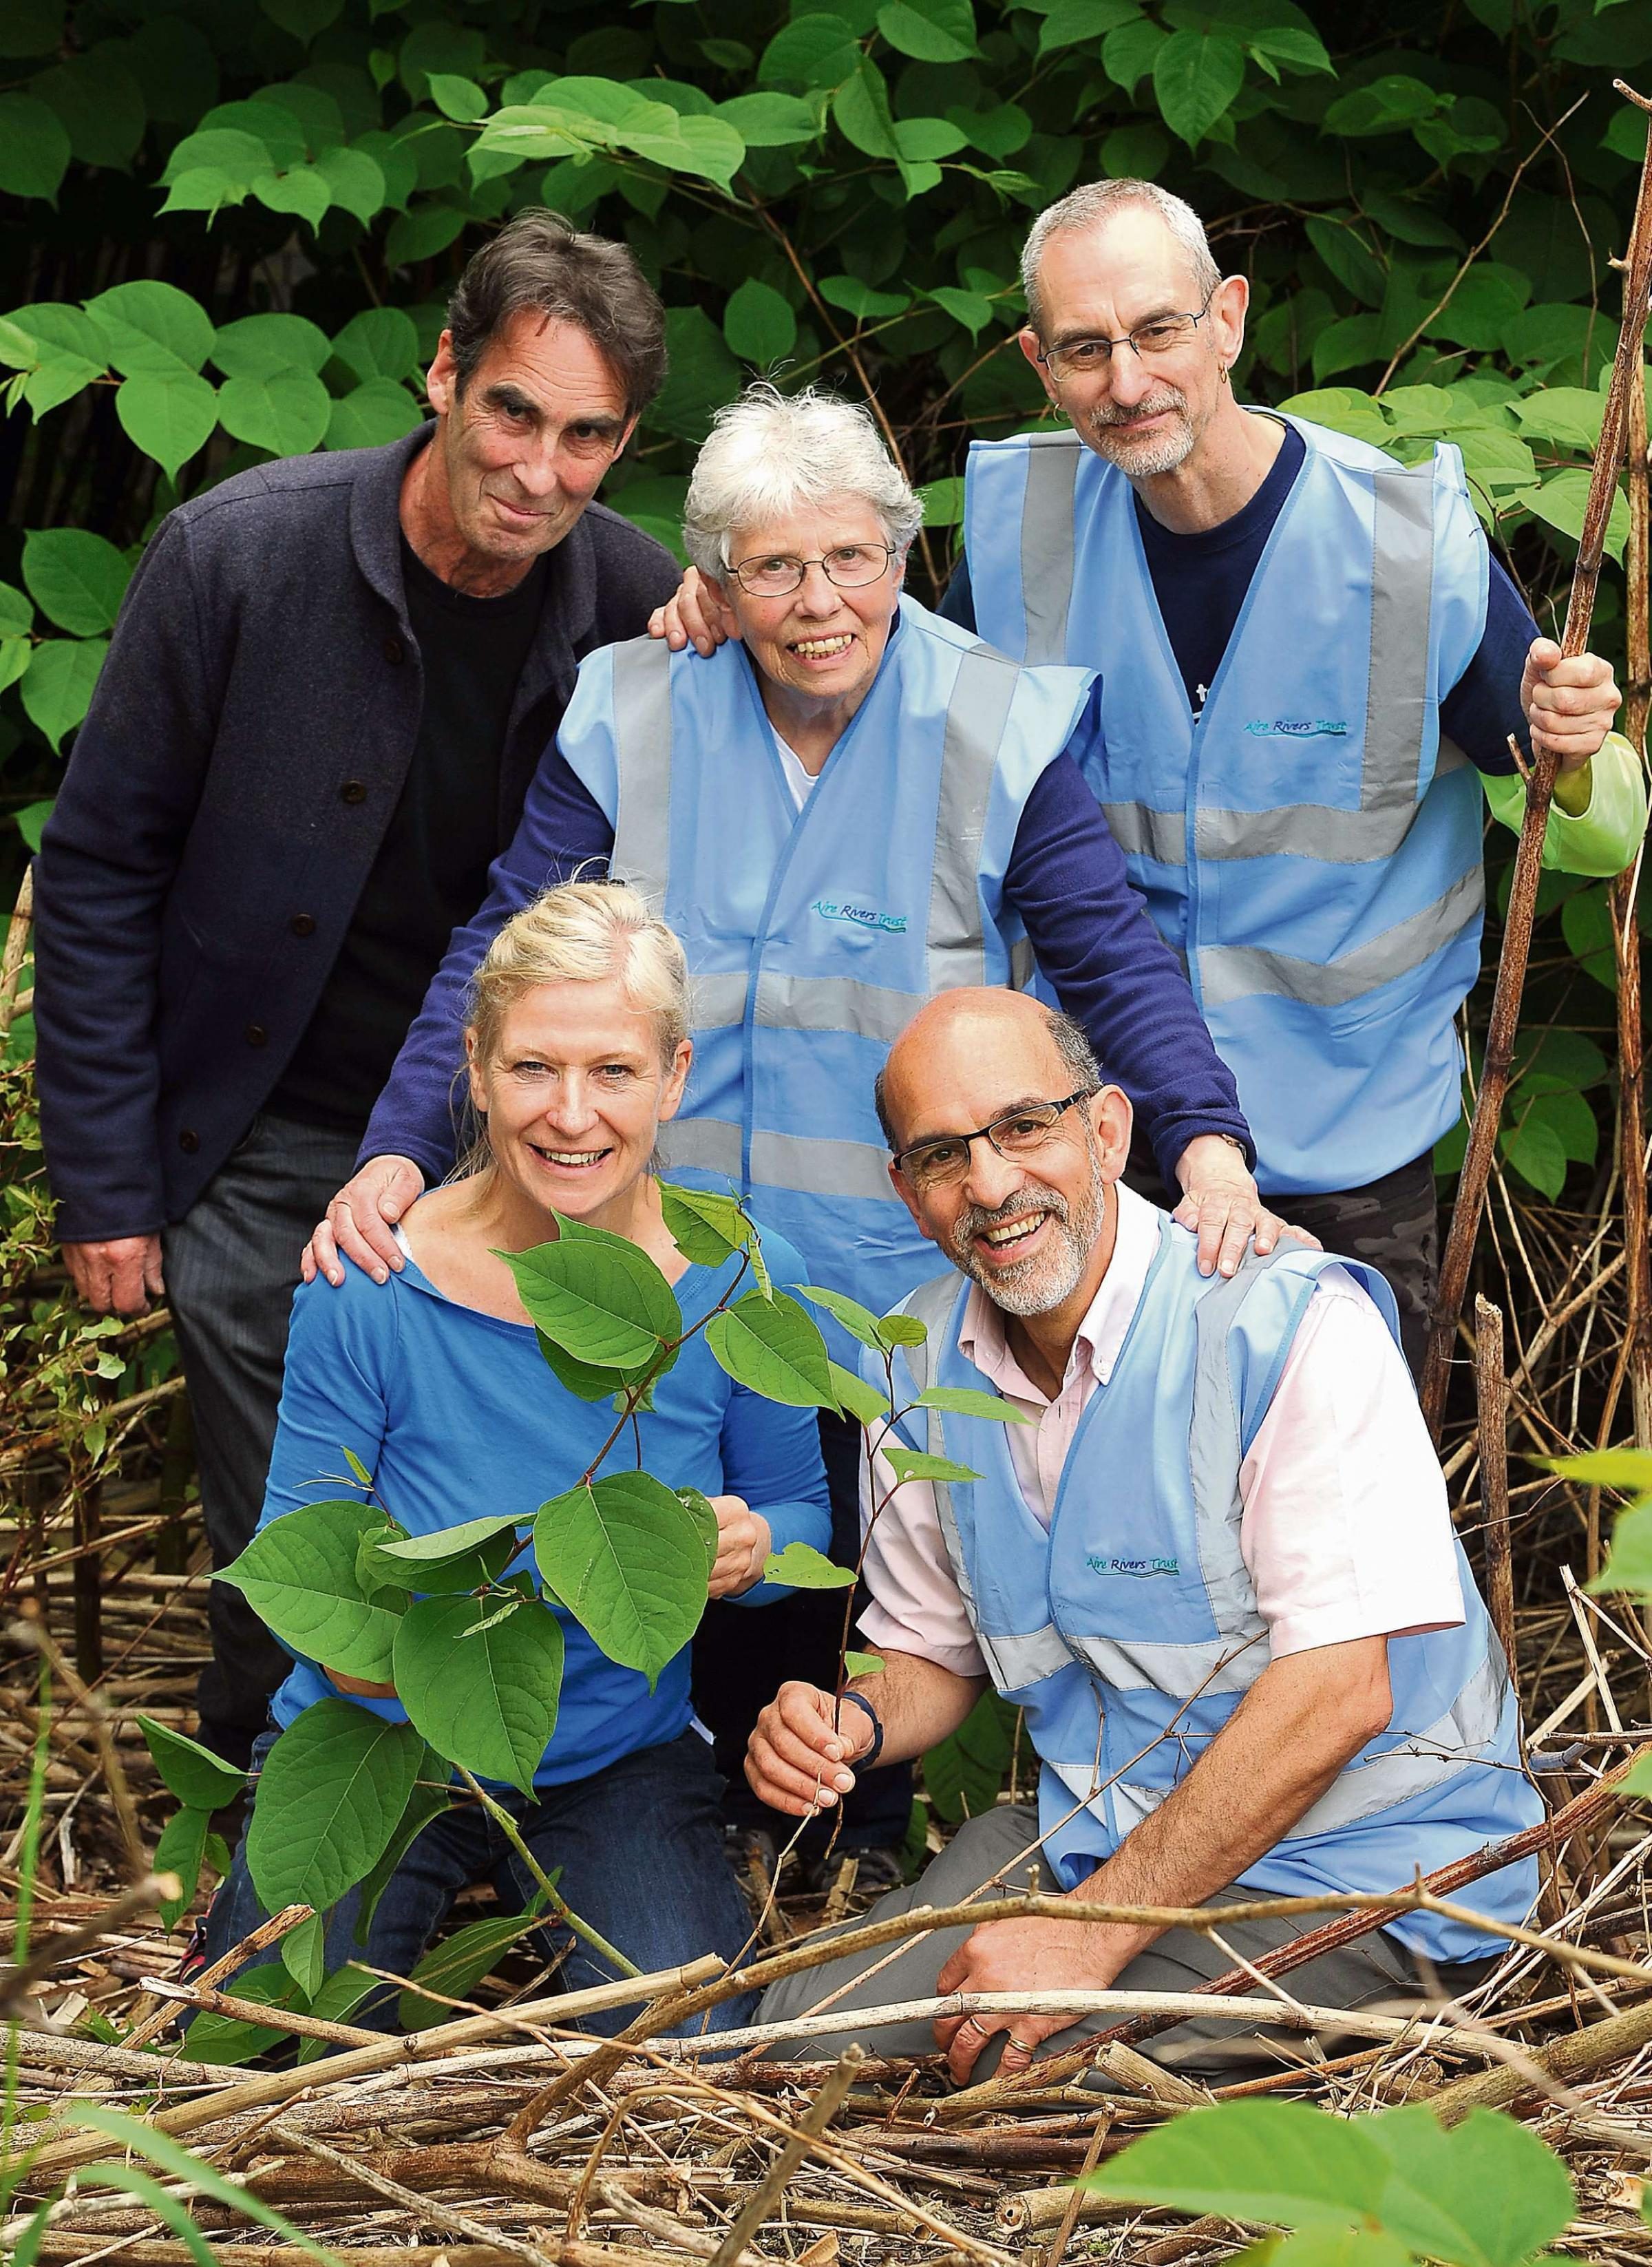 APPEAL: Friends of Bradford's Becks, (from left), Francis Wilson, Rose Reeve, Graham Glover, Sarah Dixon and Barney Lerner with some of the Japanese Knotweed they are trying to destroy